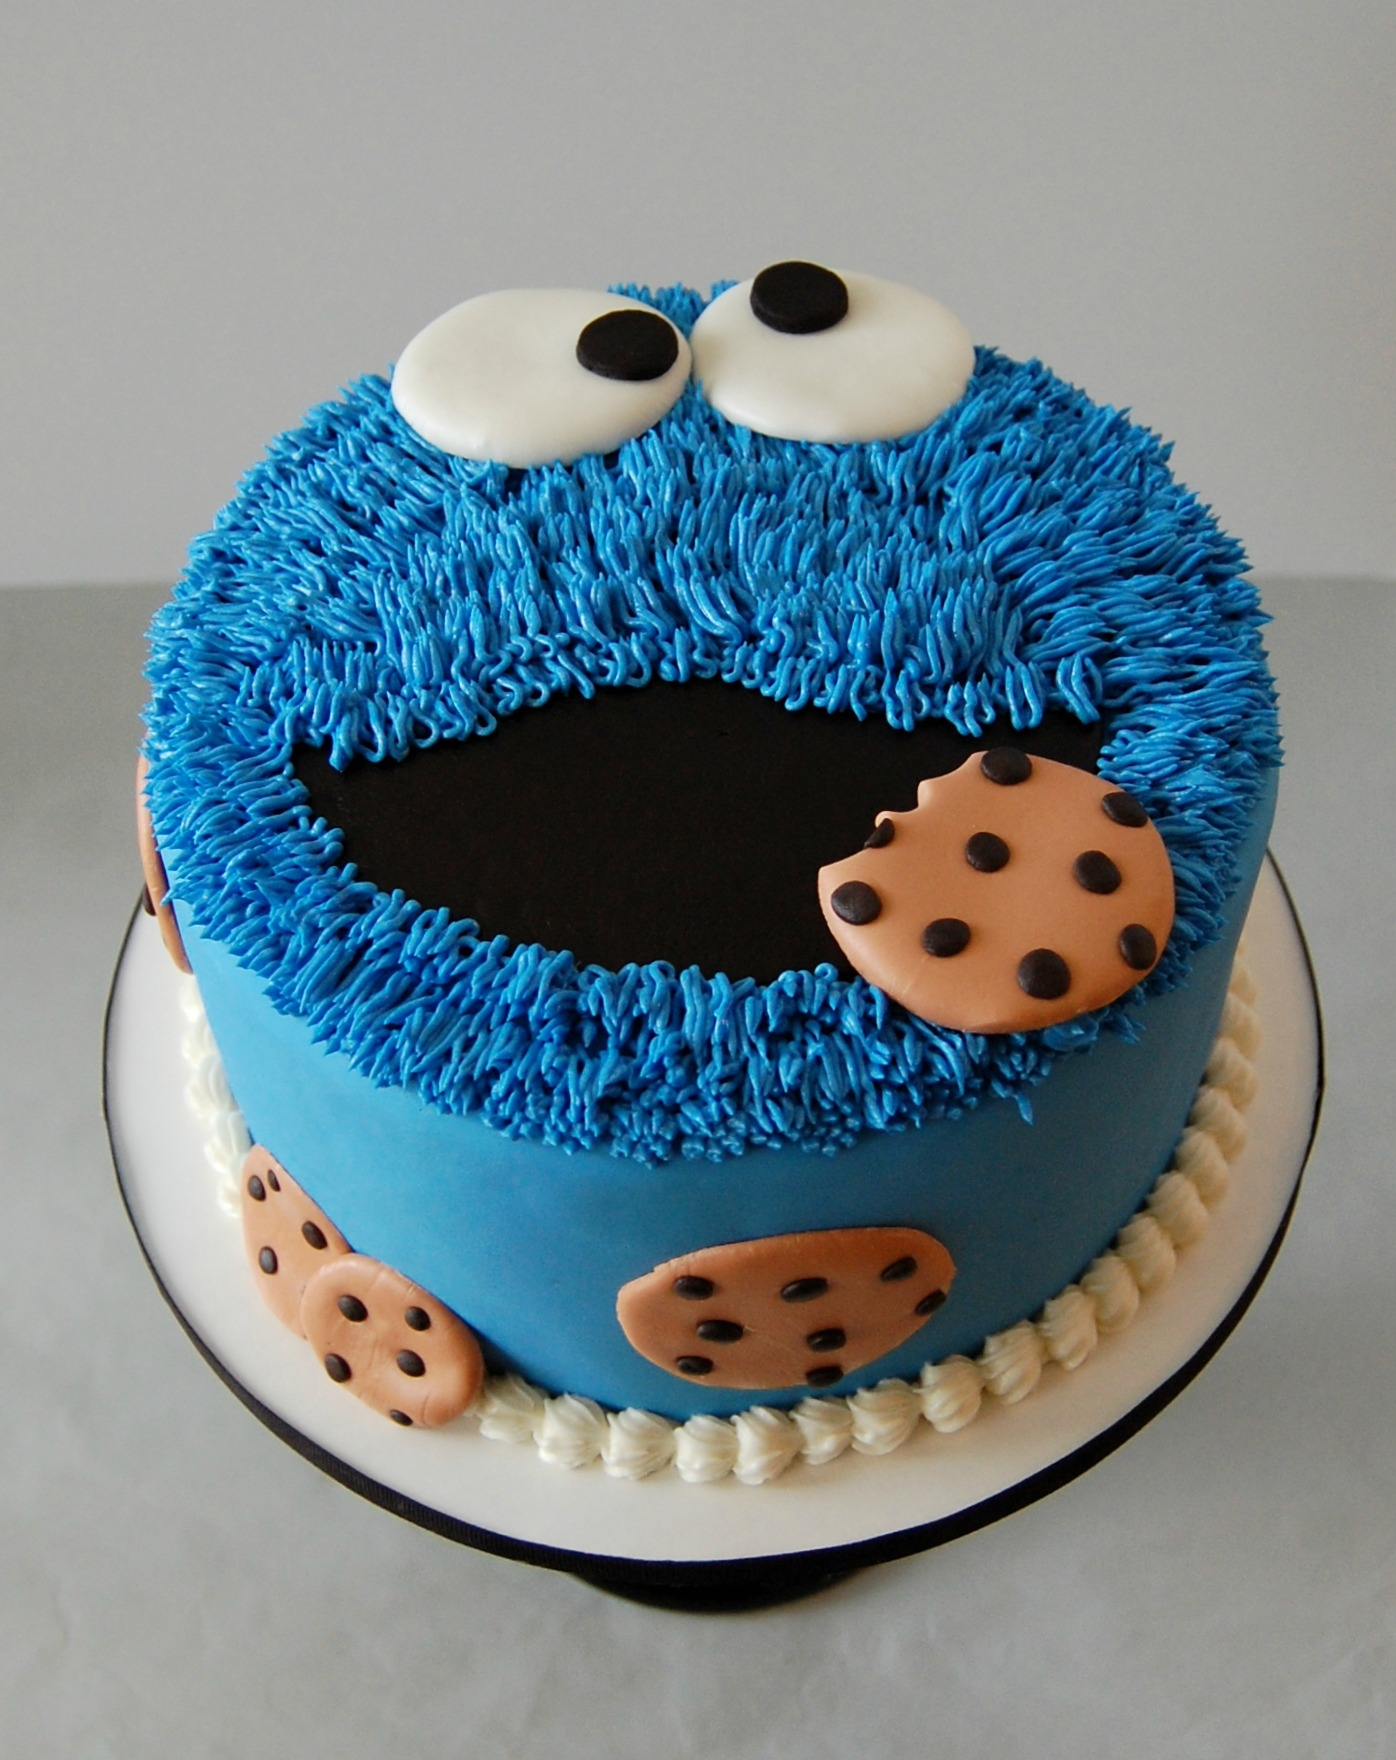 A Monster Cake Absolutely Anyone Can Make (I Promise) - Modern ...